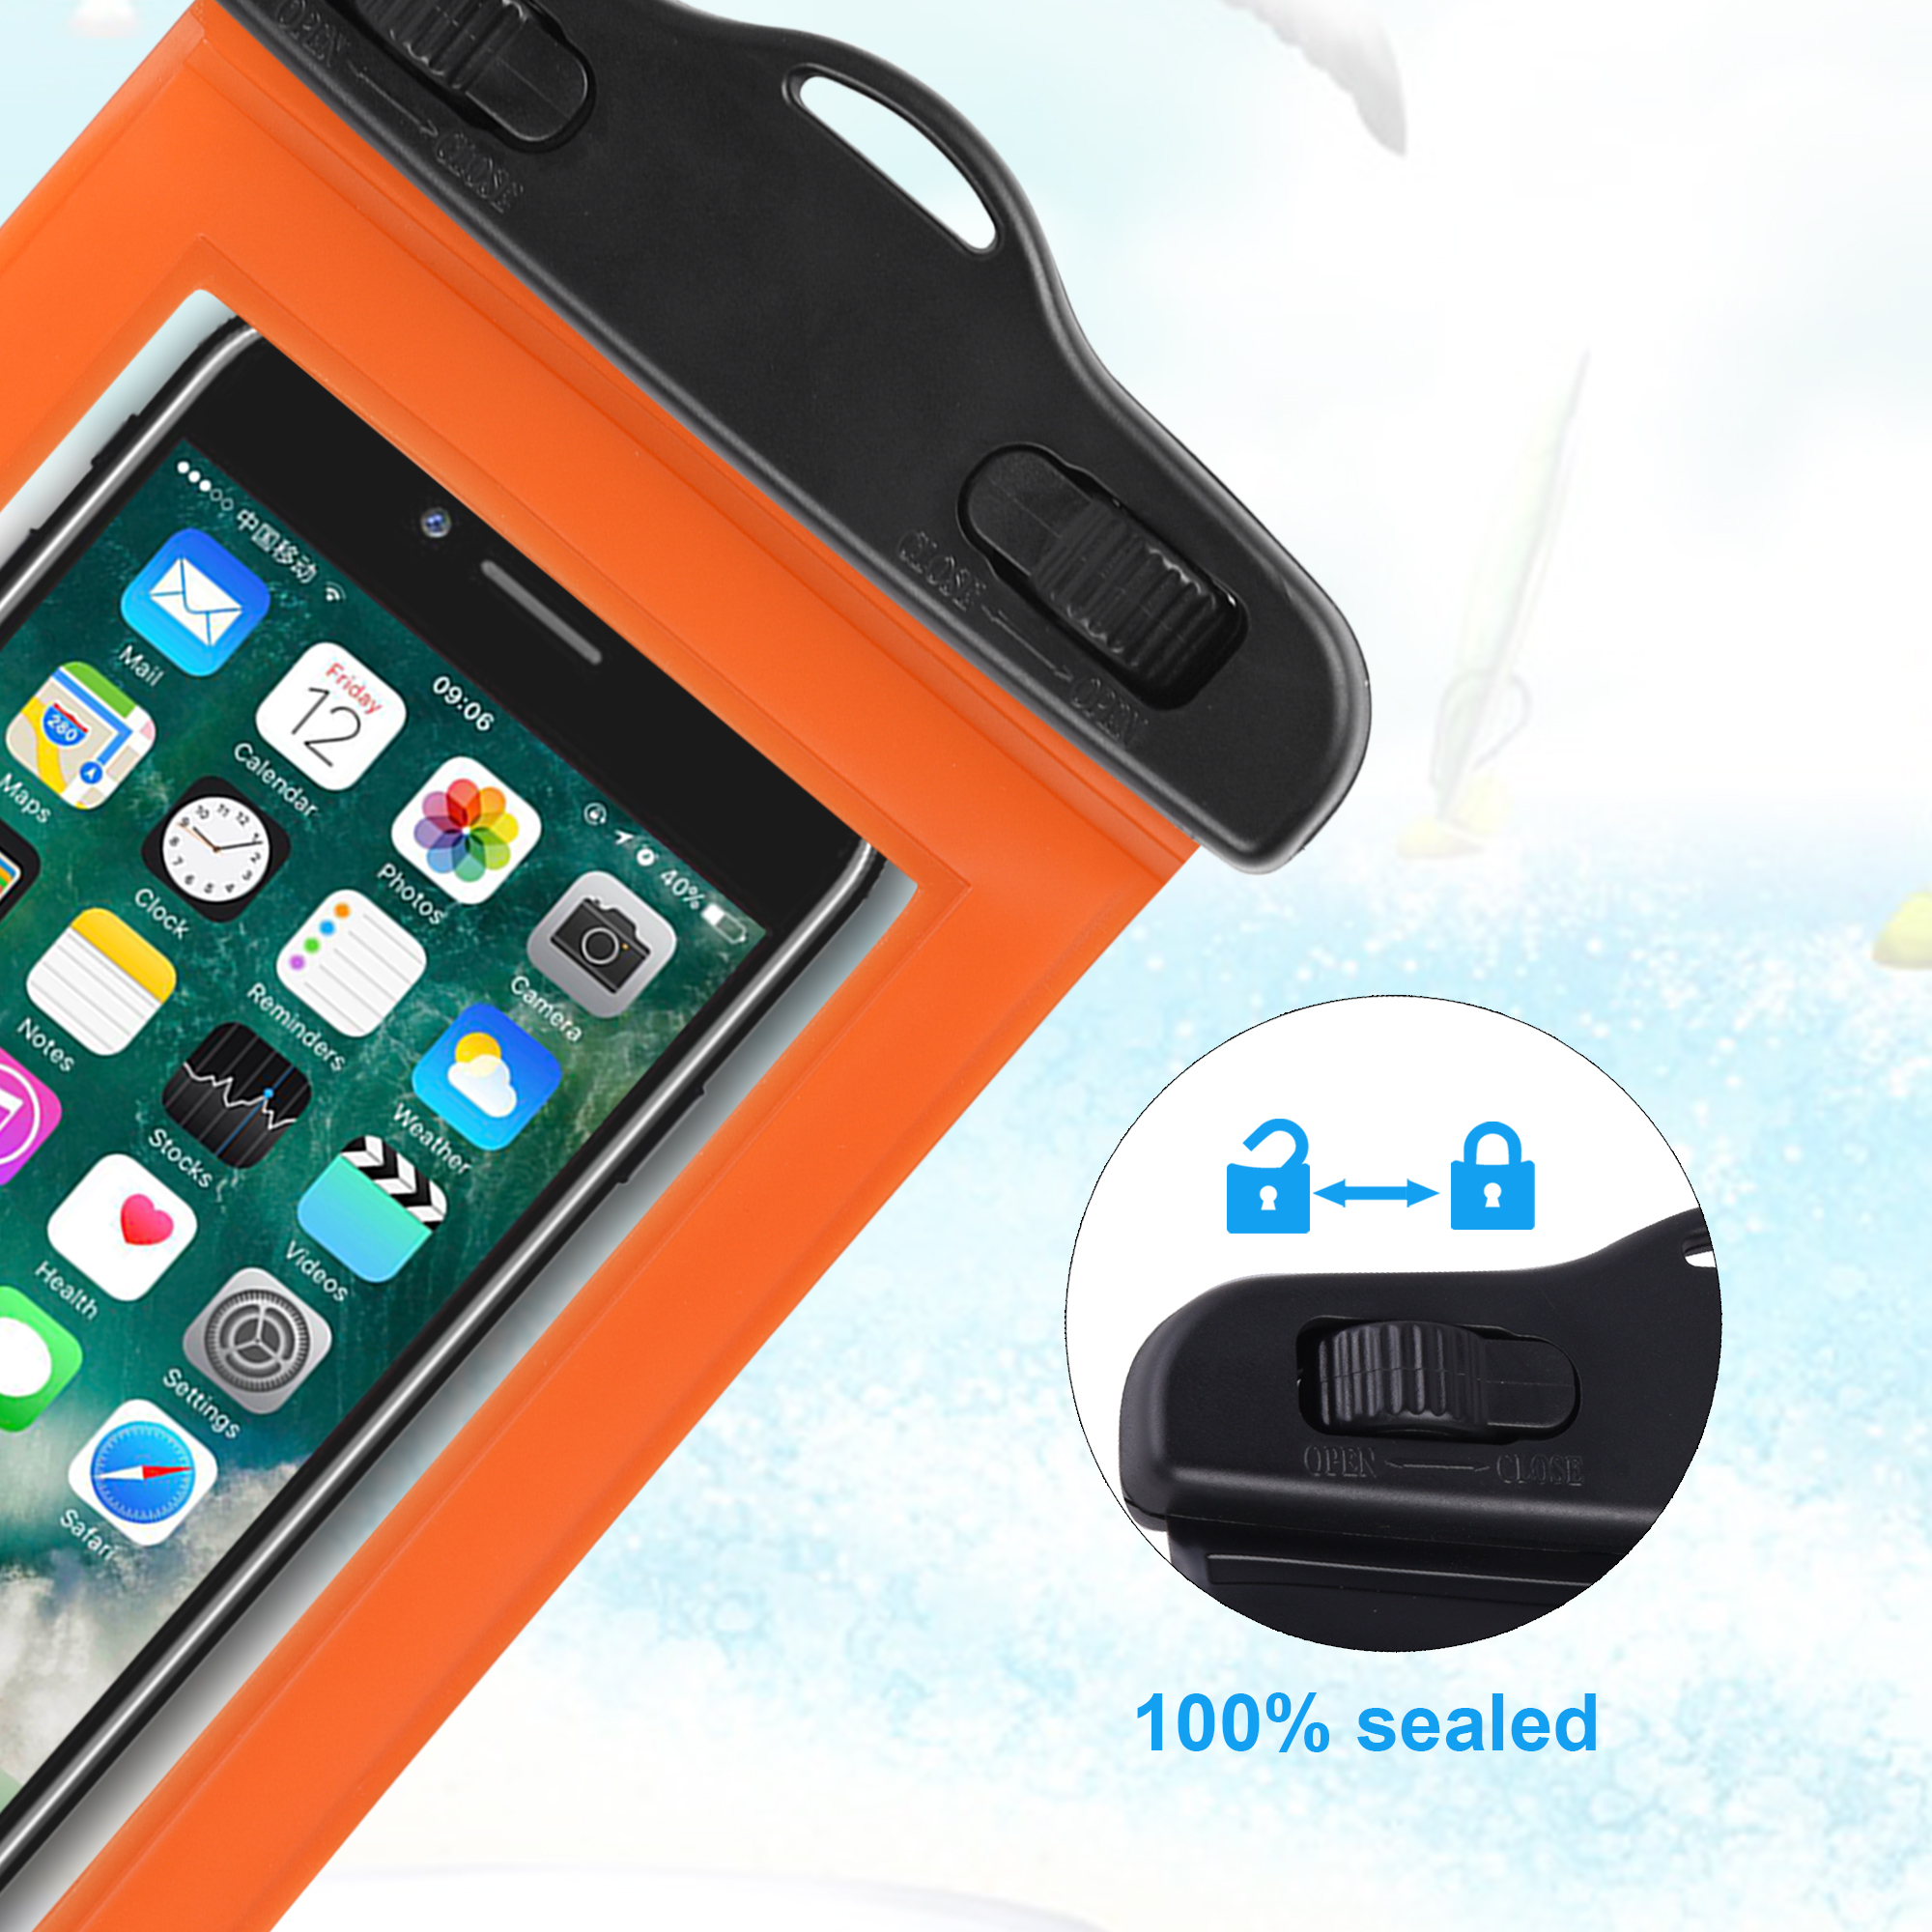 Factory Top Selling 4.7 inch Phone Waterproof Case / PVC Waterproof Bag / Waterproof Phone Pouch for iPhone 6 / 6s / 7 / 8